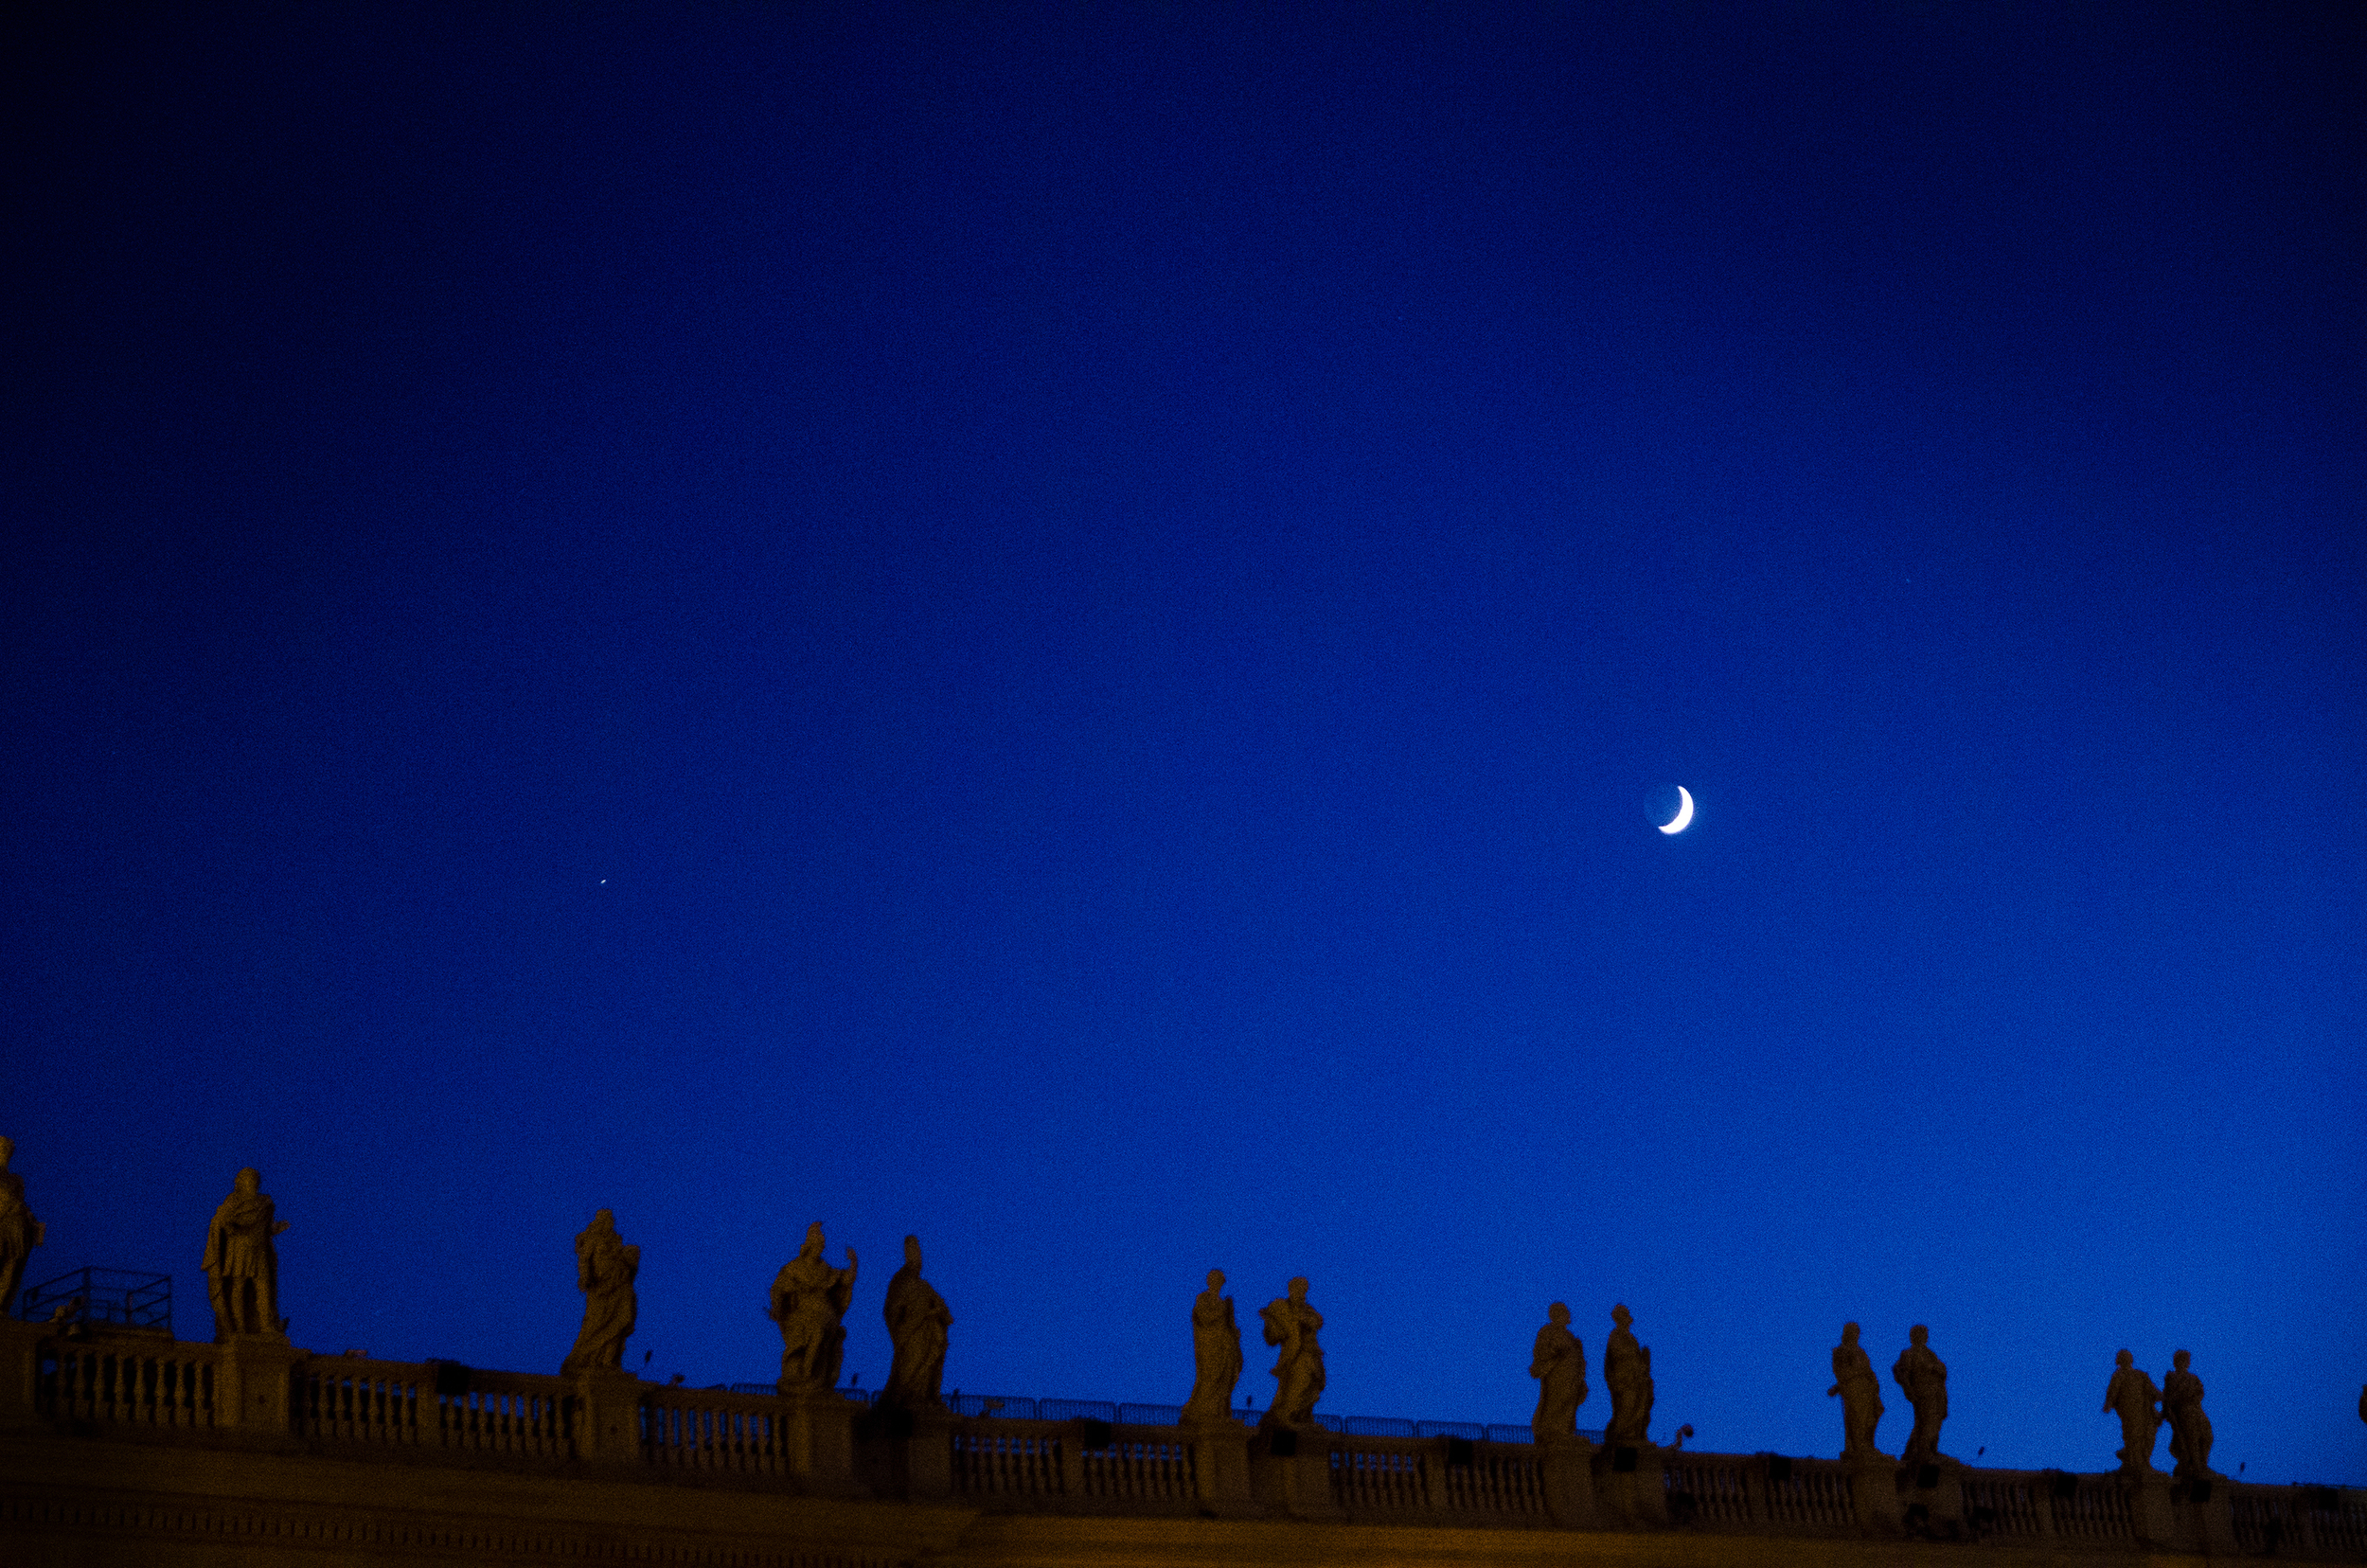 Overlooking the Main Square outside of St. Peter's Basilica, these statues stand tall silhouettedby acrescent moon in Vatican City, Italy.